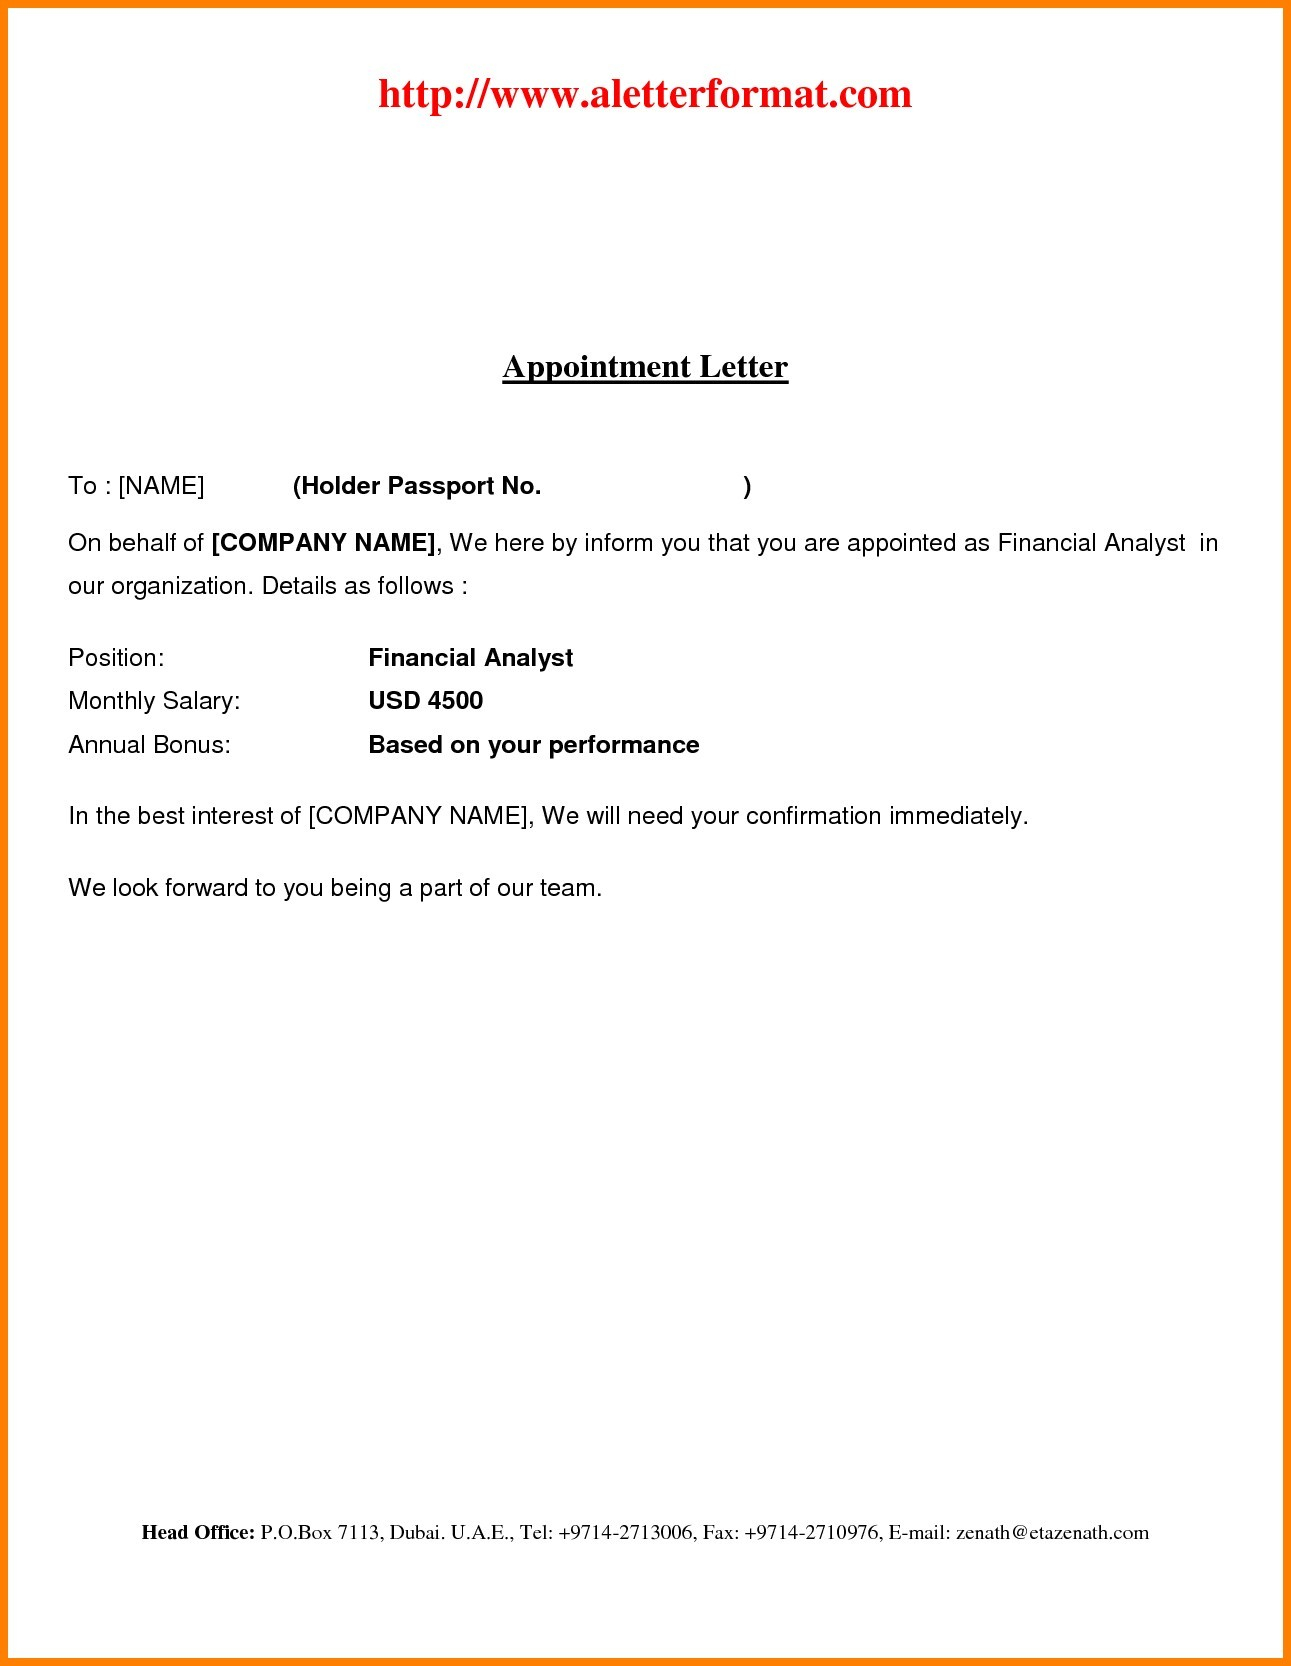 Employment Offer Letter Template Word - Unique Job Fer Letter Template Word